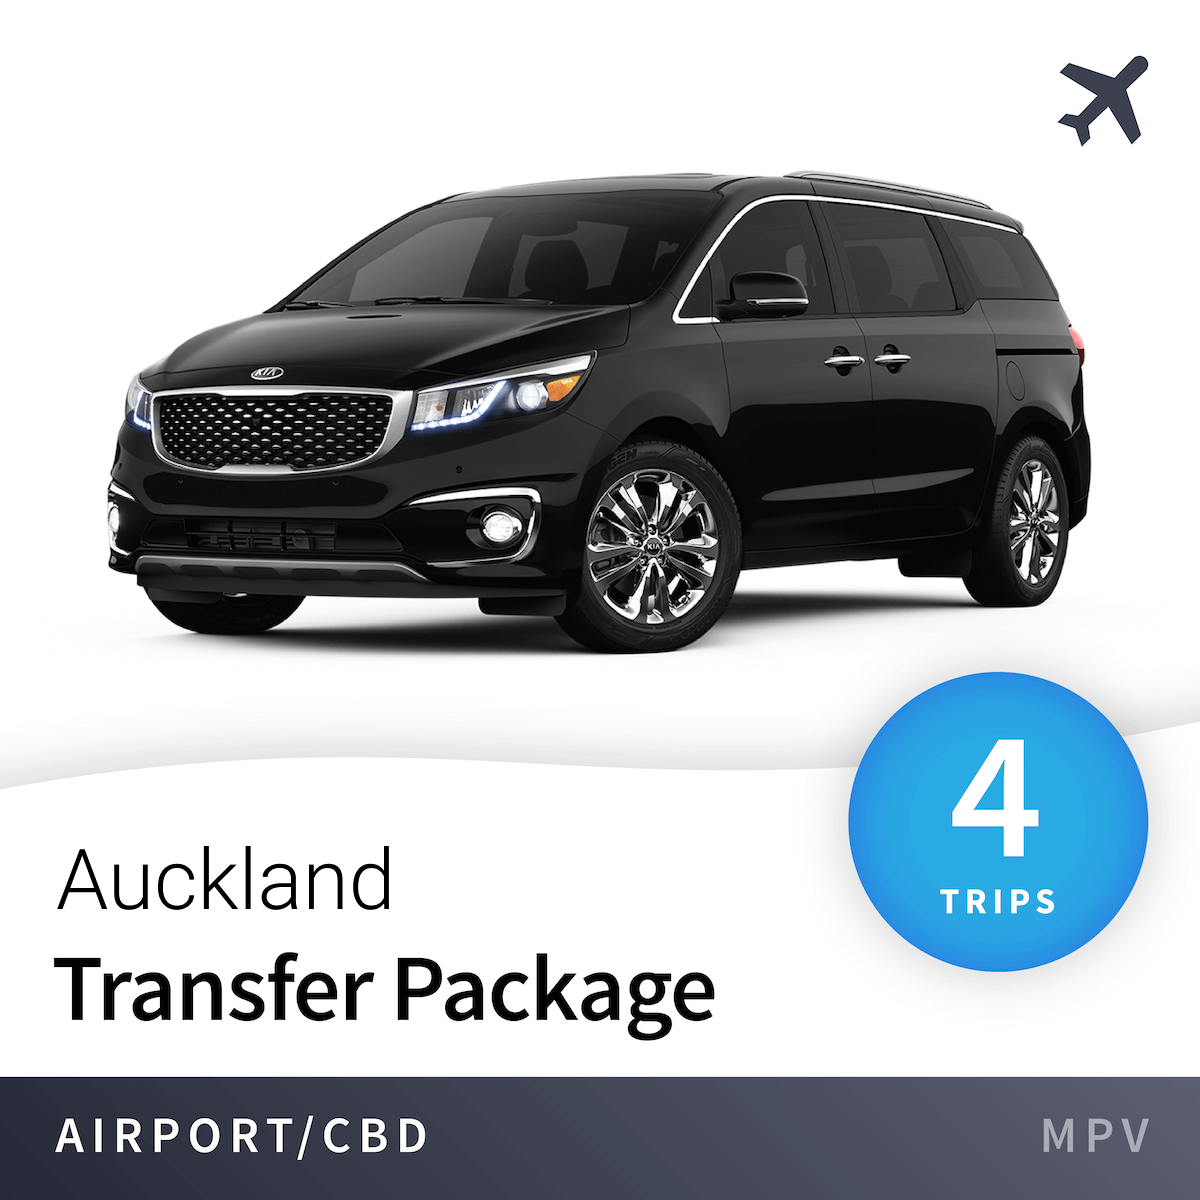 Auckland Airport Transfer Package – MPV (4 Trips) 12